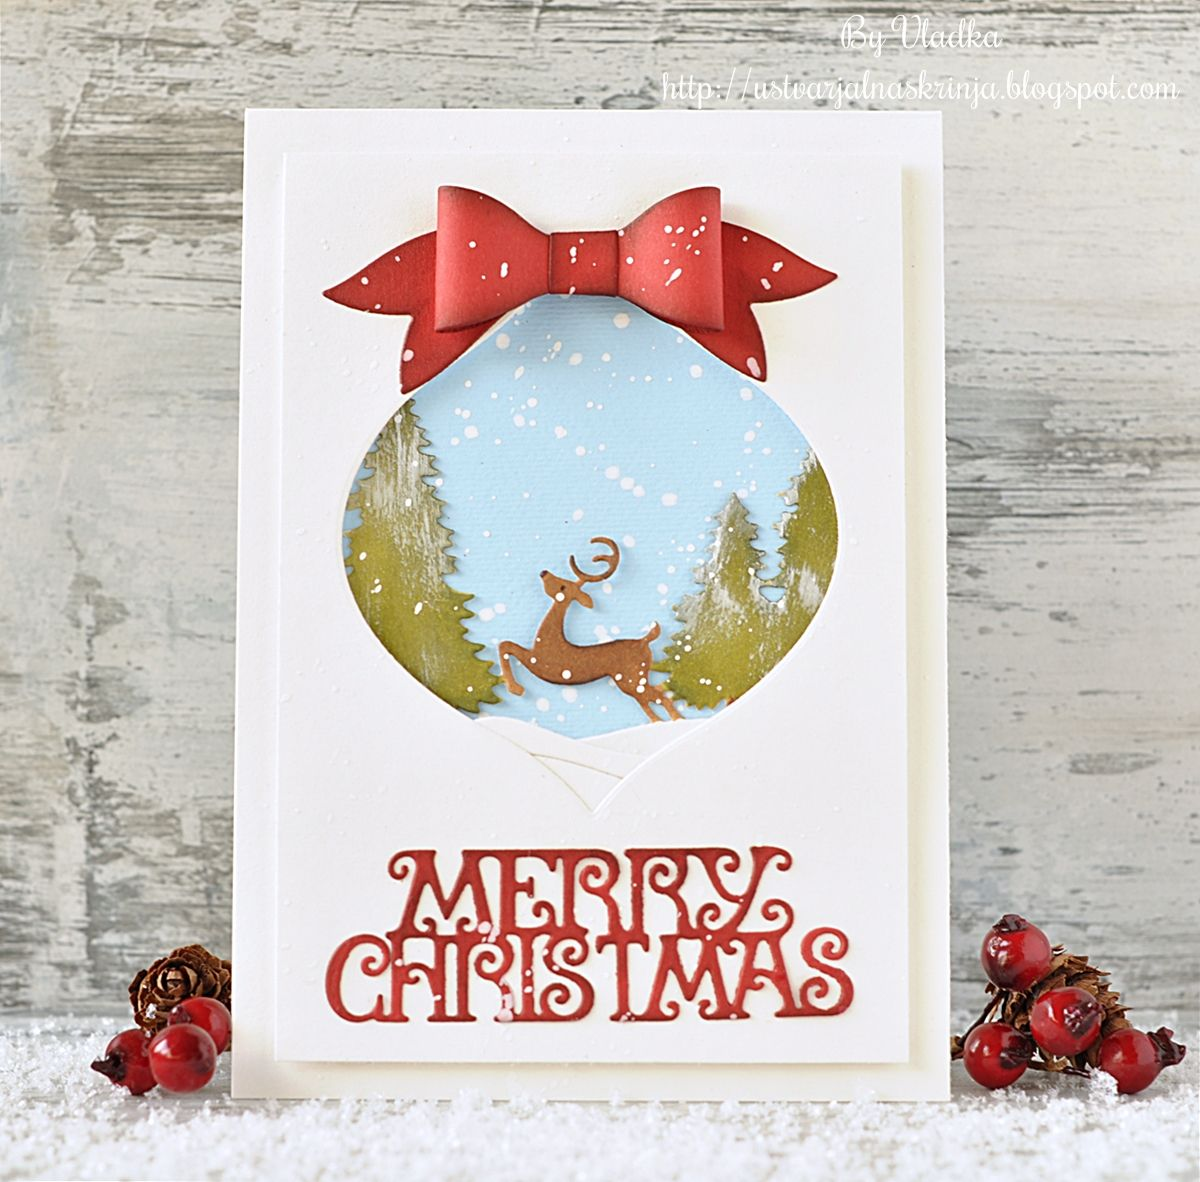 Hi, Vladka here! It is such fun to play with Christmas dies and ...